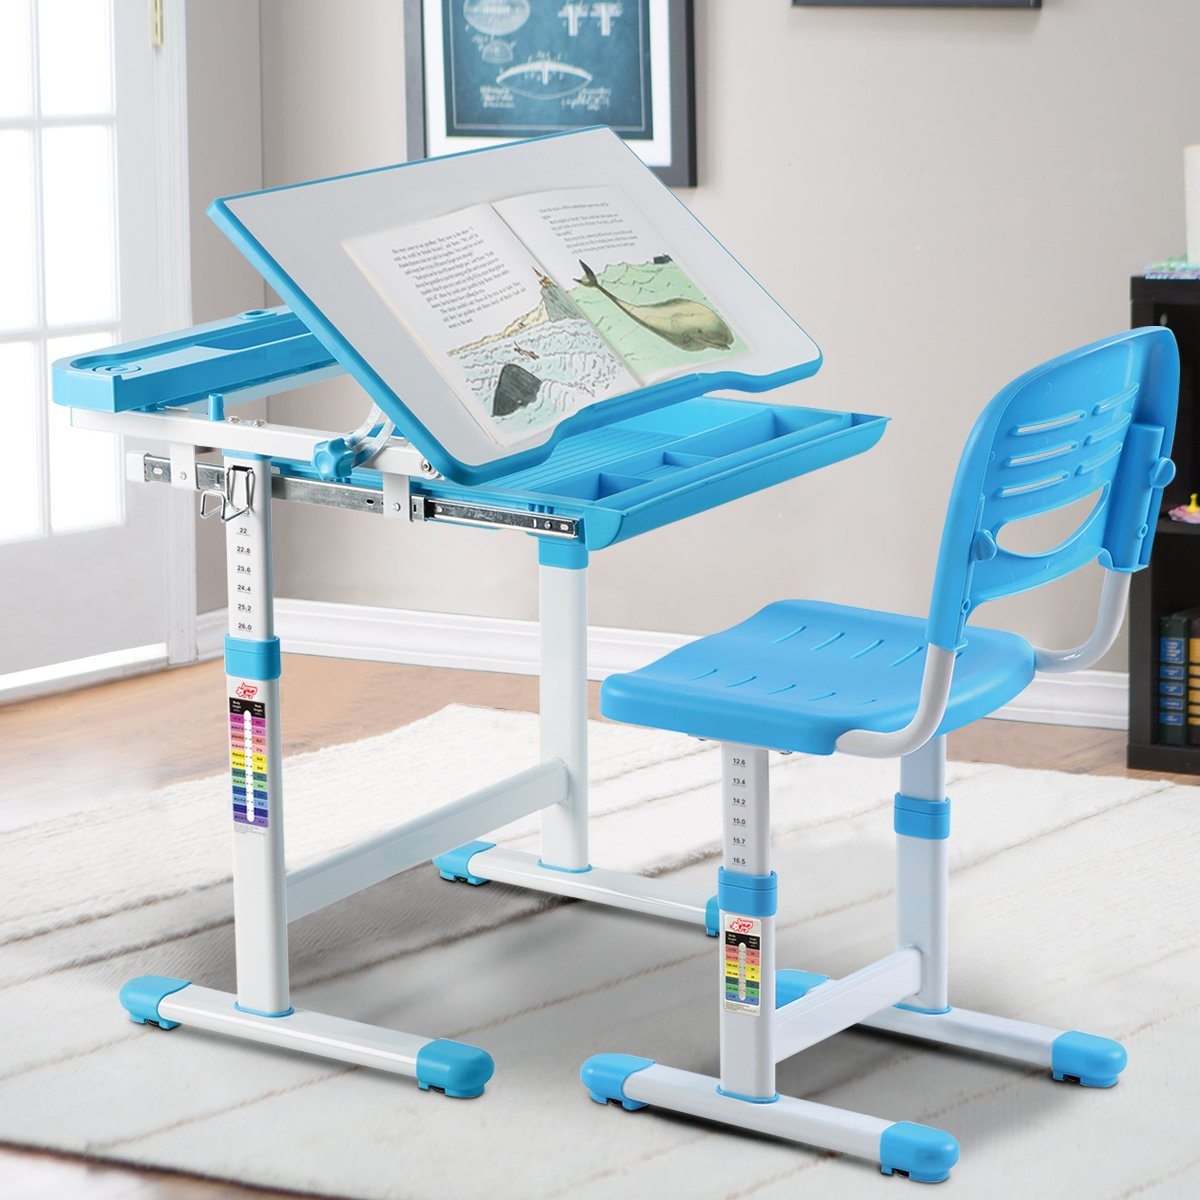 BABY JOY Kids Desk and Chair Set, 0-40 Degree Table Top Adjustable Tilt for Painting, Spacious Pull Out Drawer, Height Adjustable, School Study Workstation for Children (Blue) by BABY JOY